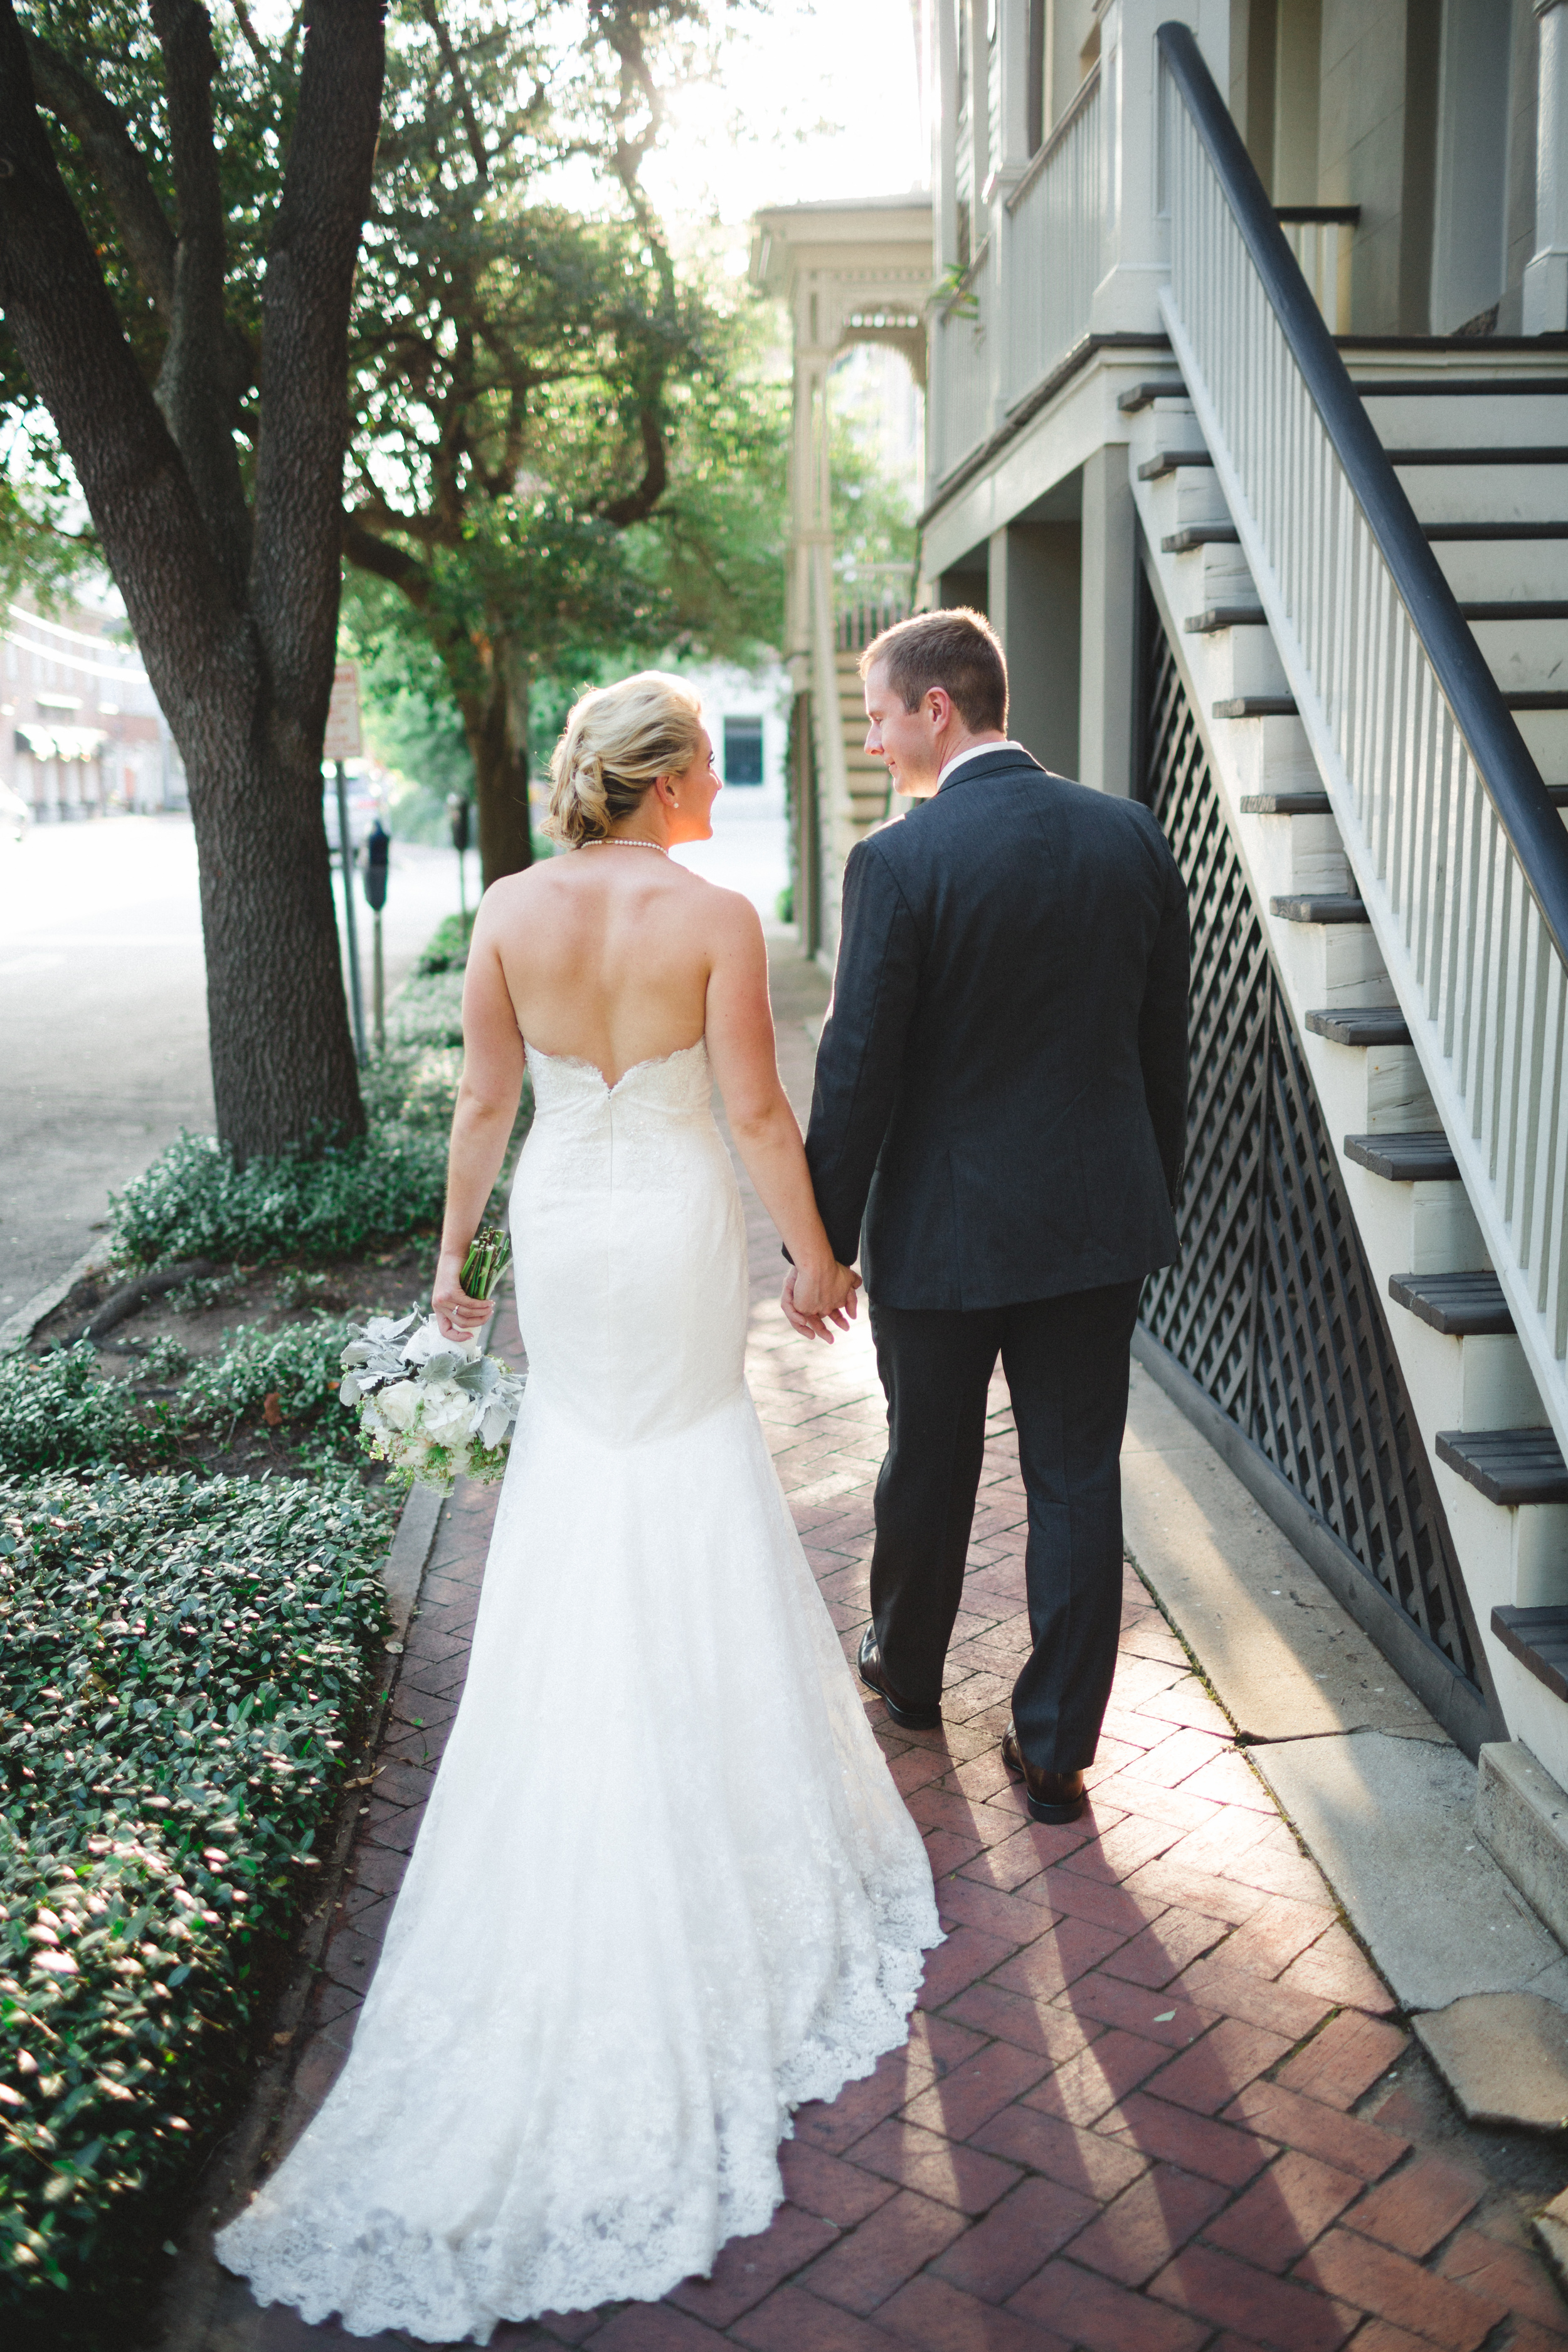 Hillary-and-Brian-izzy-hudgins-photography-anais-anette-tristan-lace-mermaid-wedding-dress-ivory-and-beau-bridal-boutique-savannah-bridal-boutique-savannah-wedding-dresses-savannah-bridal-gowns-savannah-wedding-dresses-first-babtist-savannah-34.jpg